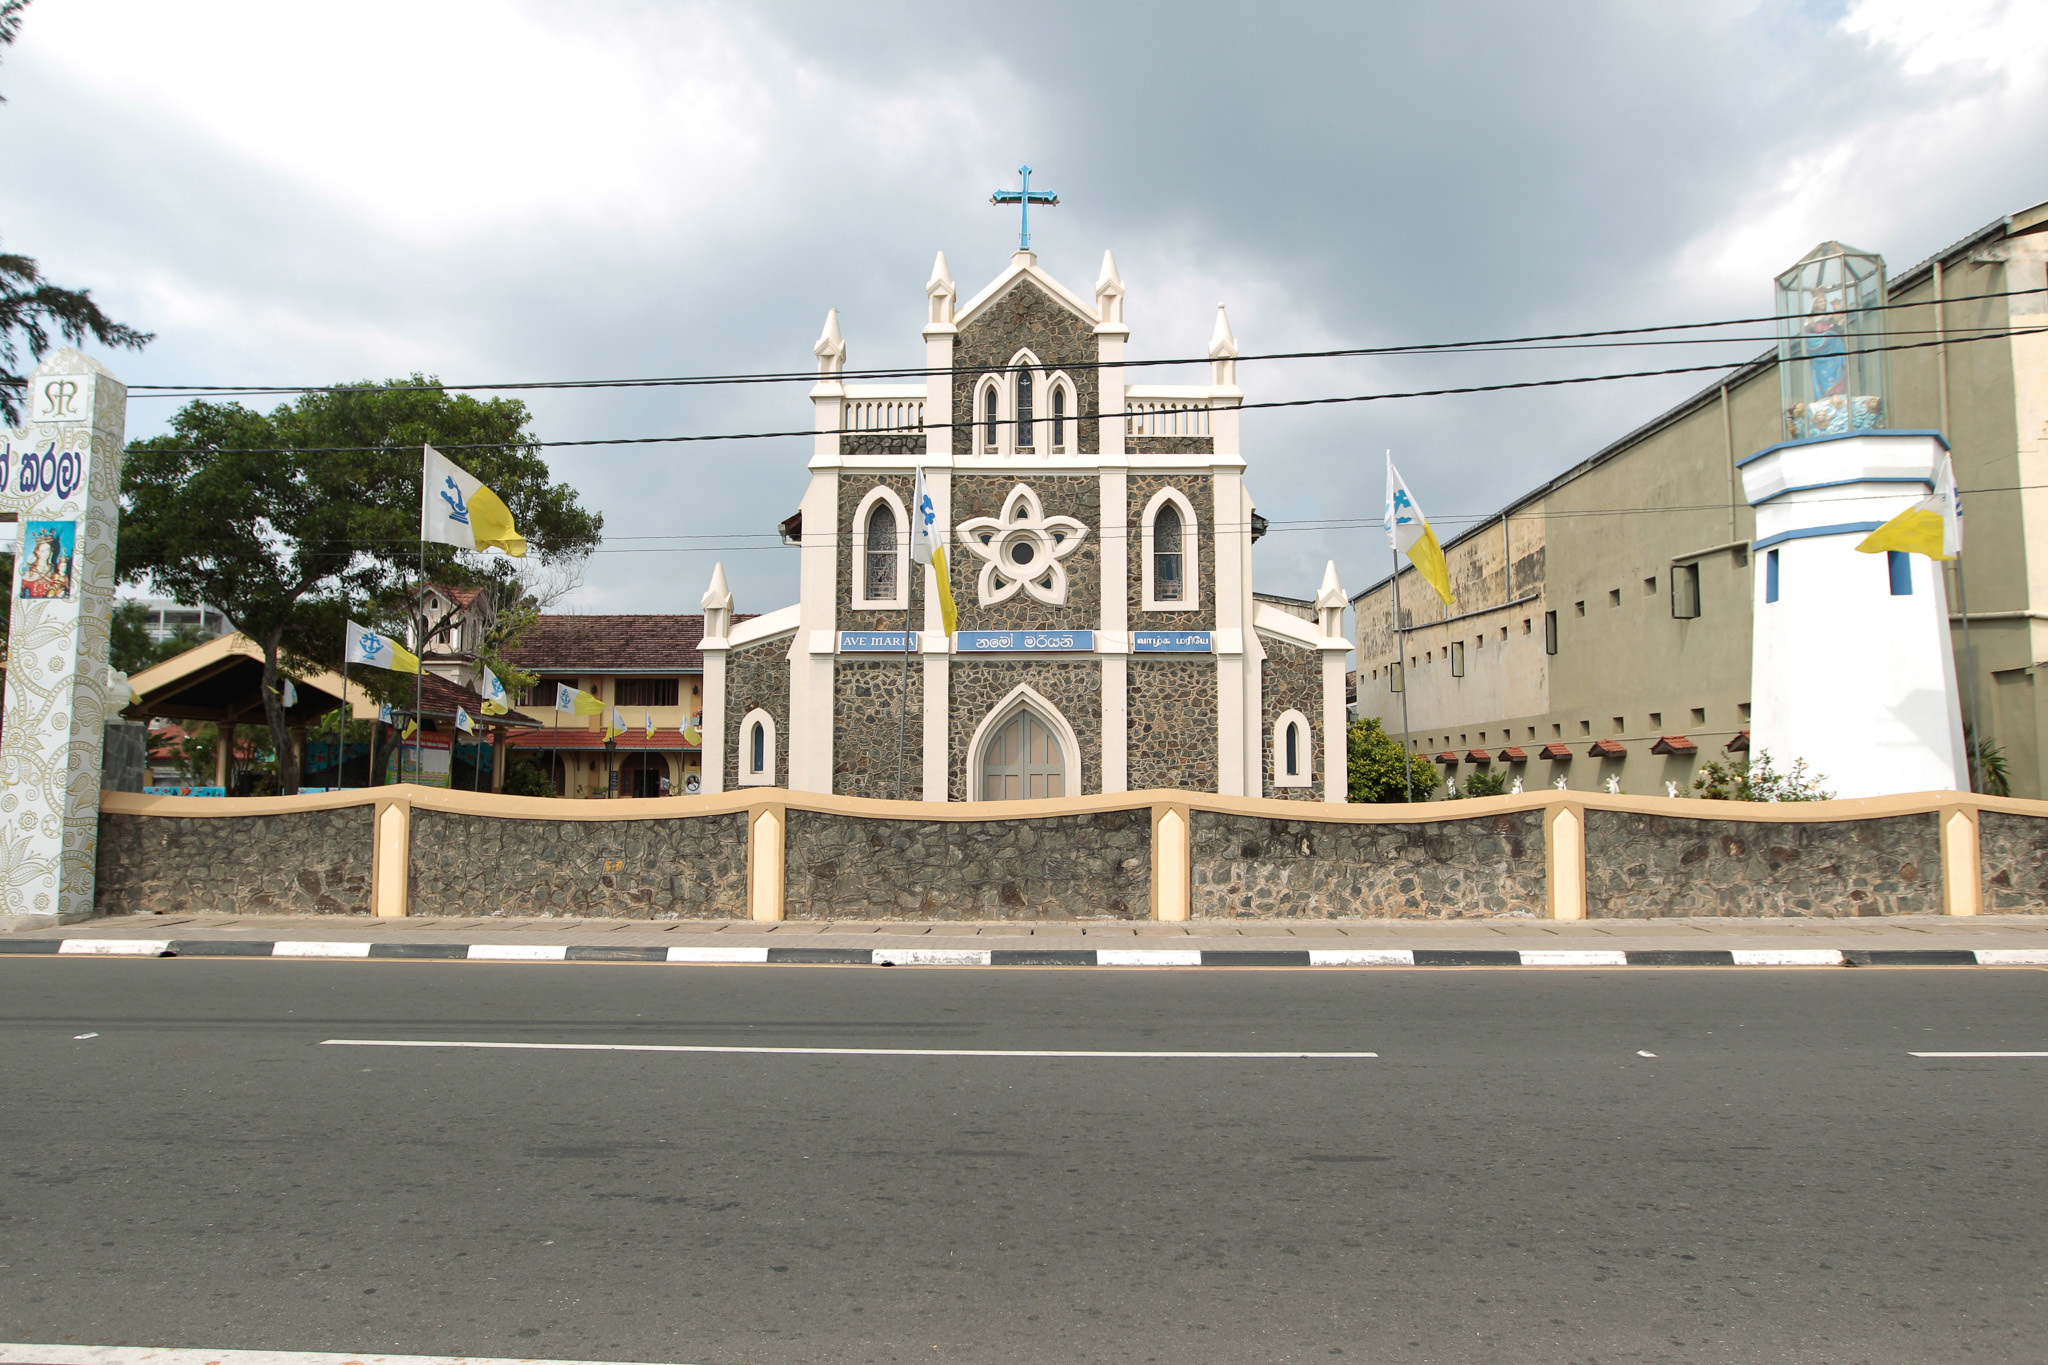 Shrine of Our Lady of Matara